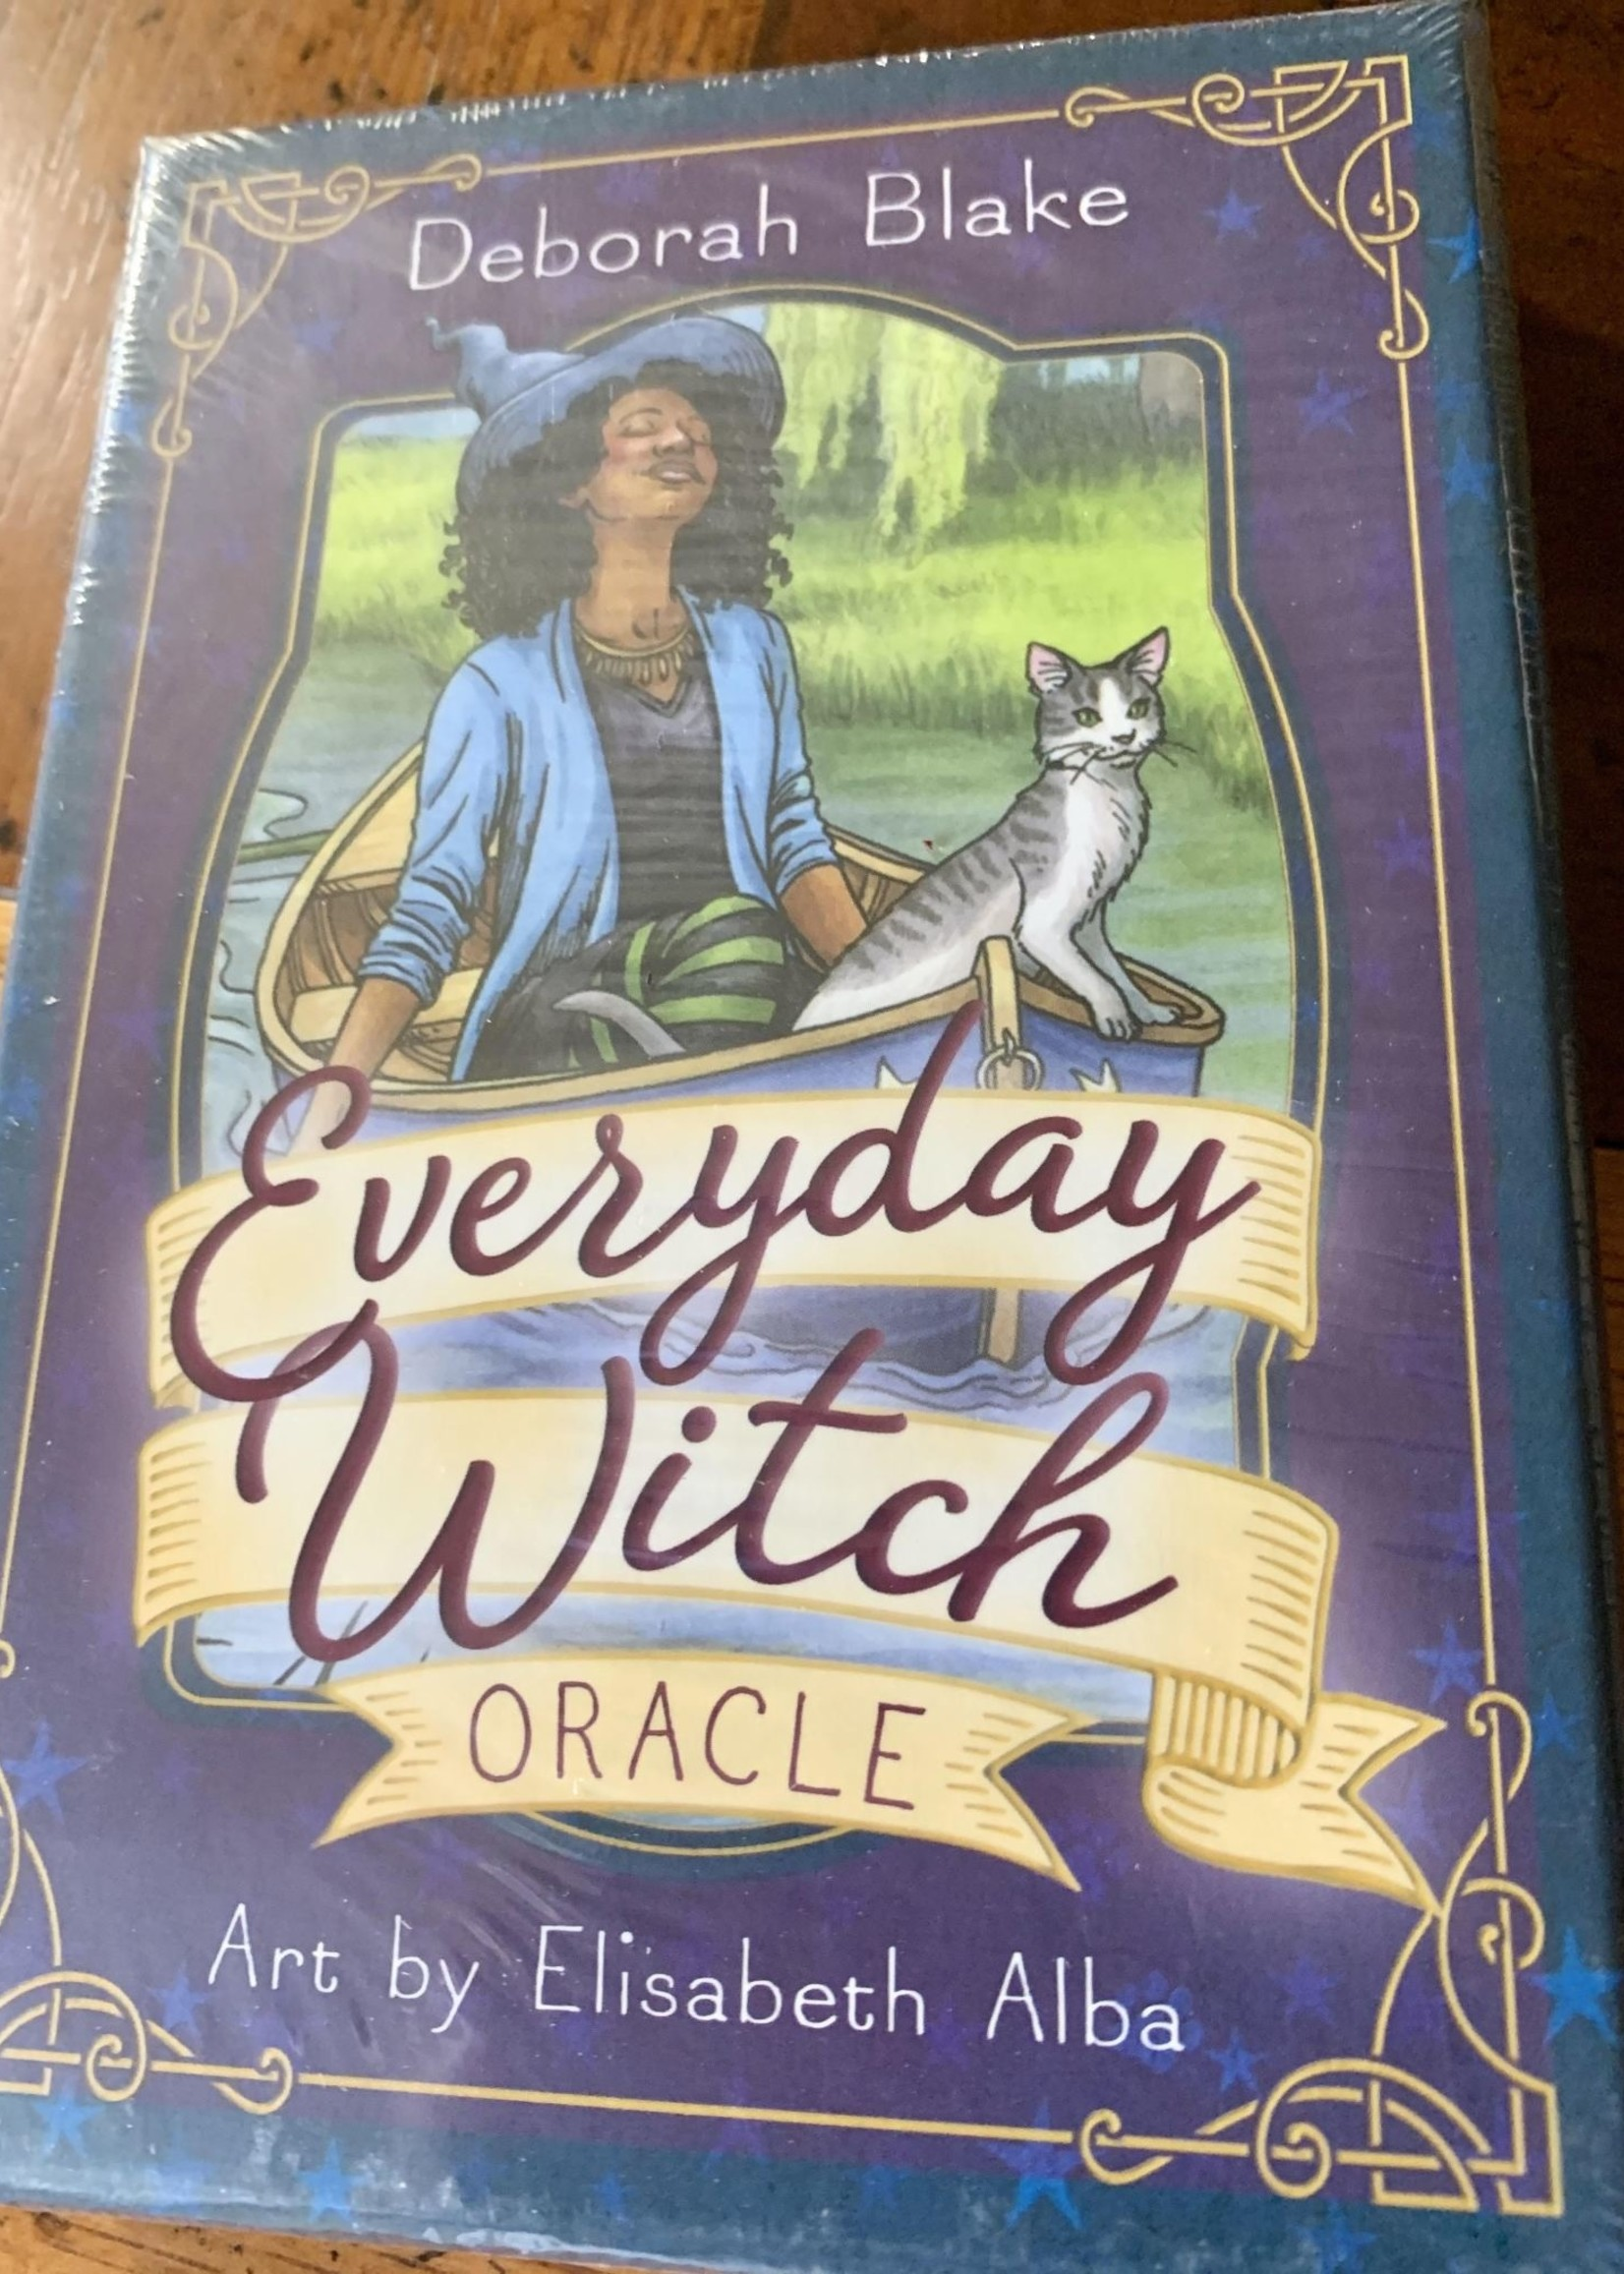 Everyday Witch Oracle